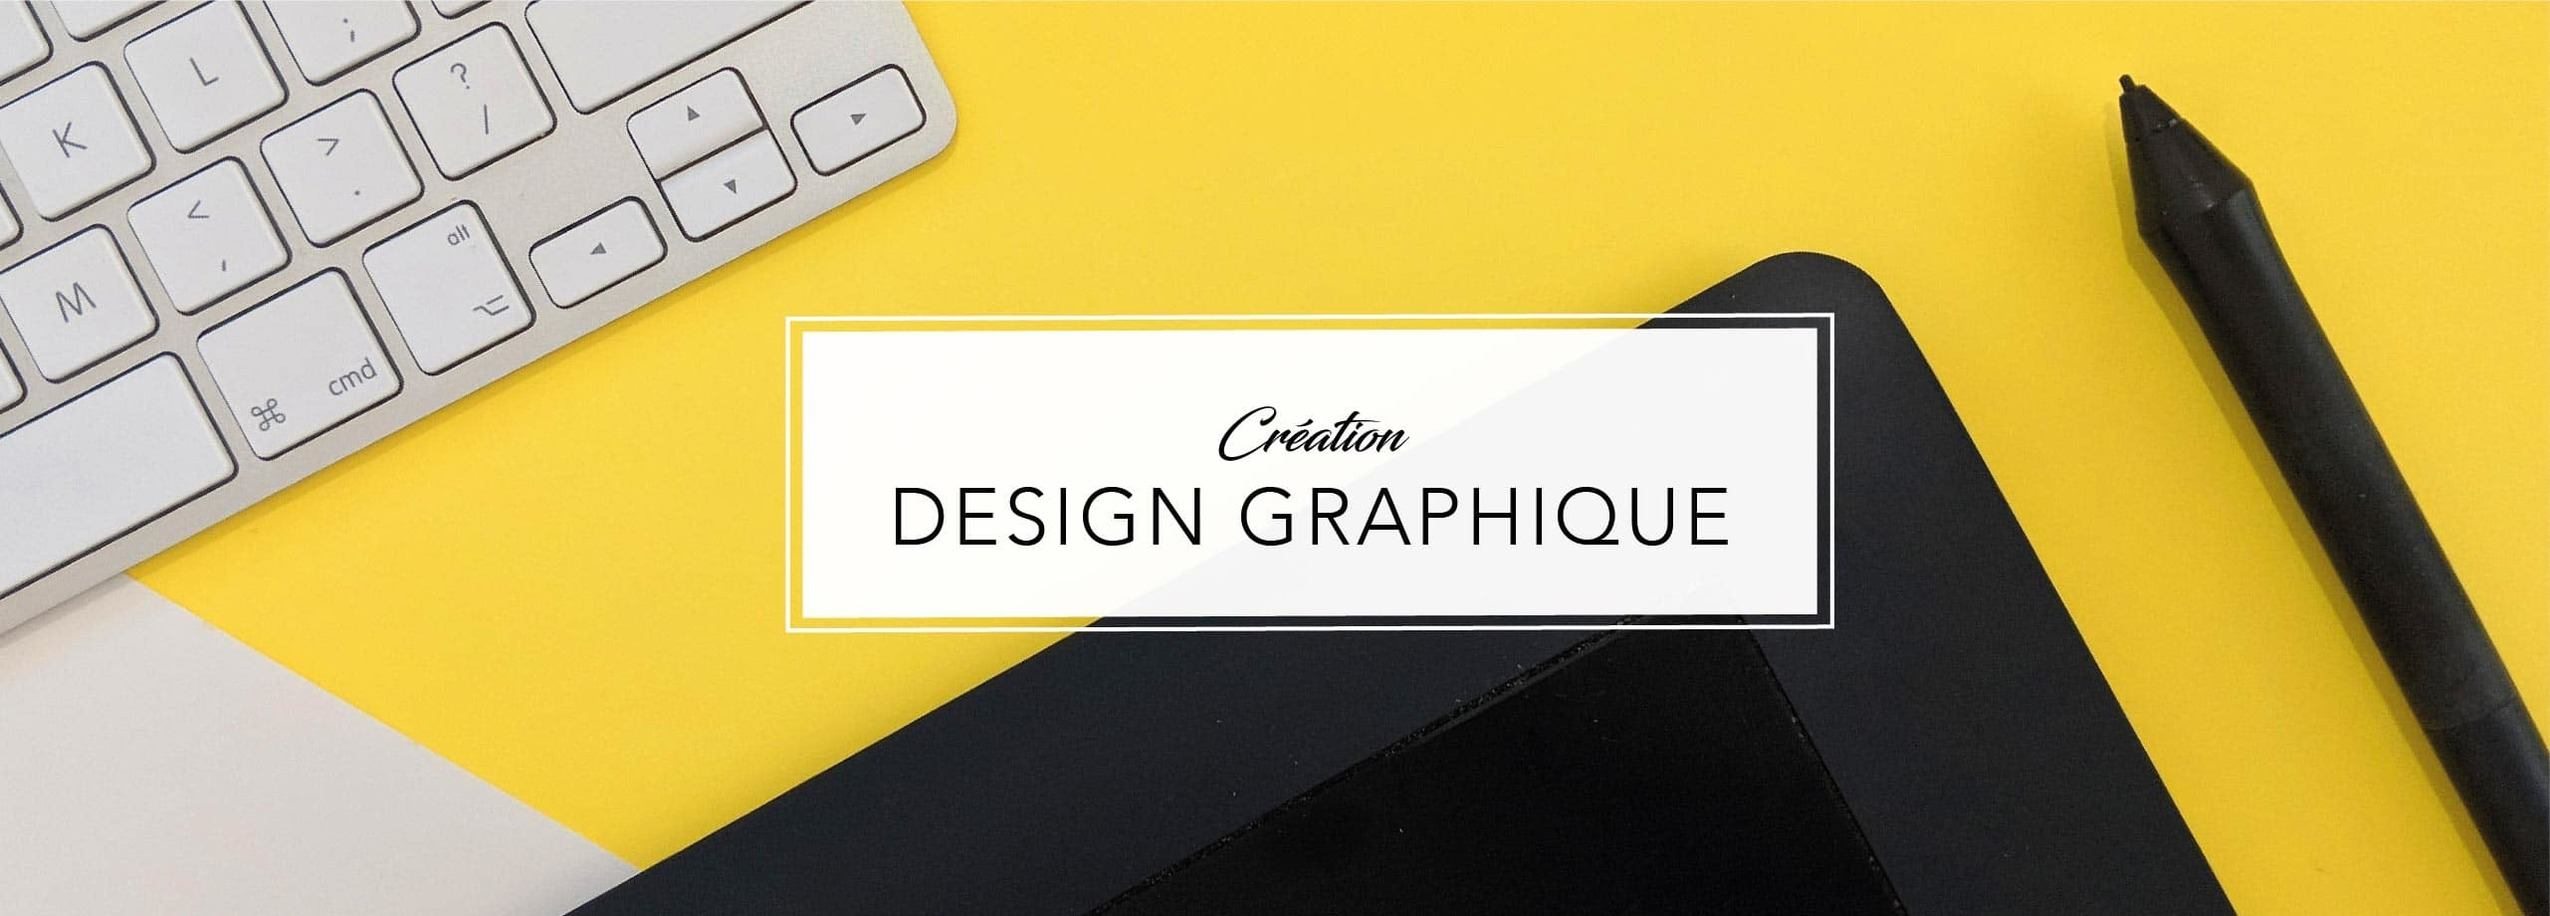 conception graphique - webdesign - impression